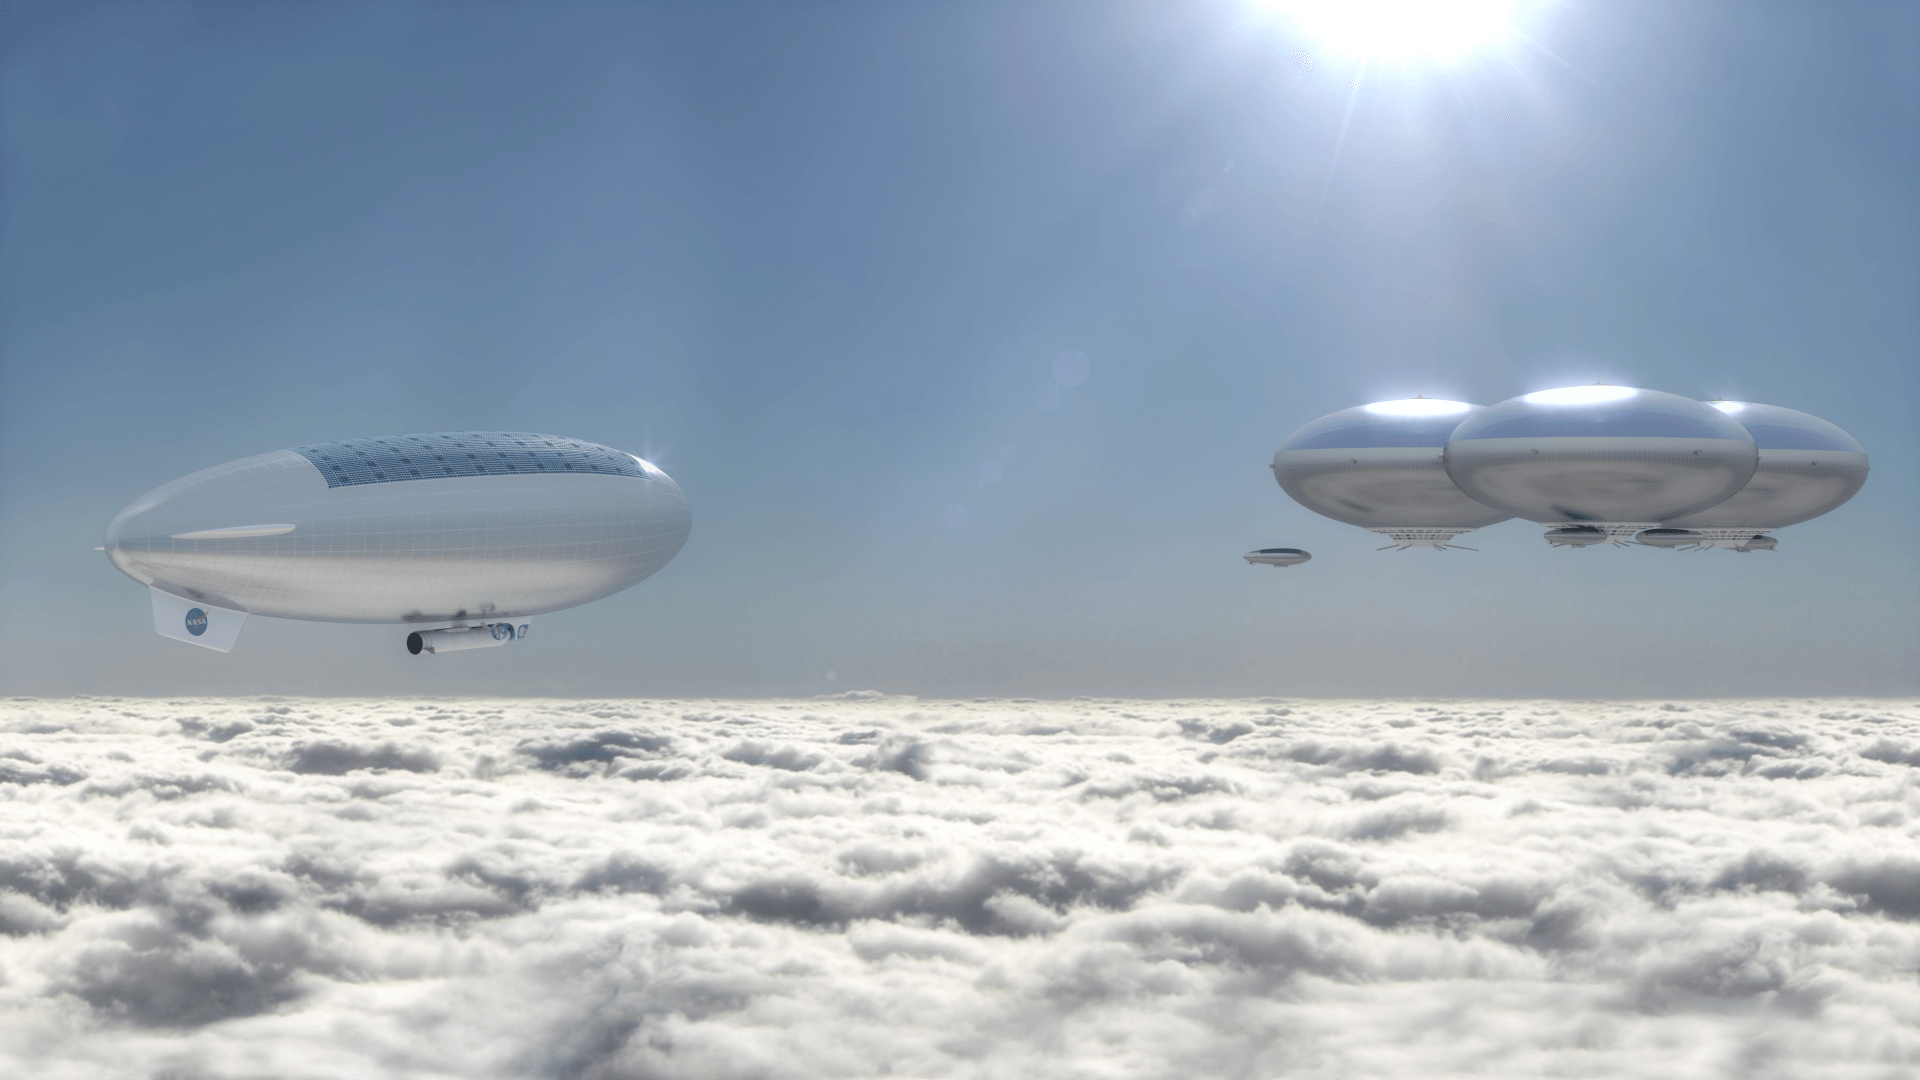 Artist's concept of a Venus cloud city — a possible future outcome of the High Altitude Venus Operational Concept (HAVOC) plan. - Image Credit: Advanced Concepts Lab at NASA Langley Research Center